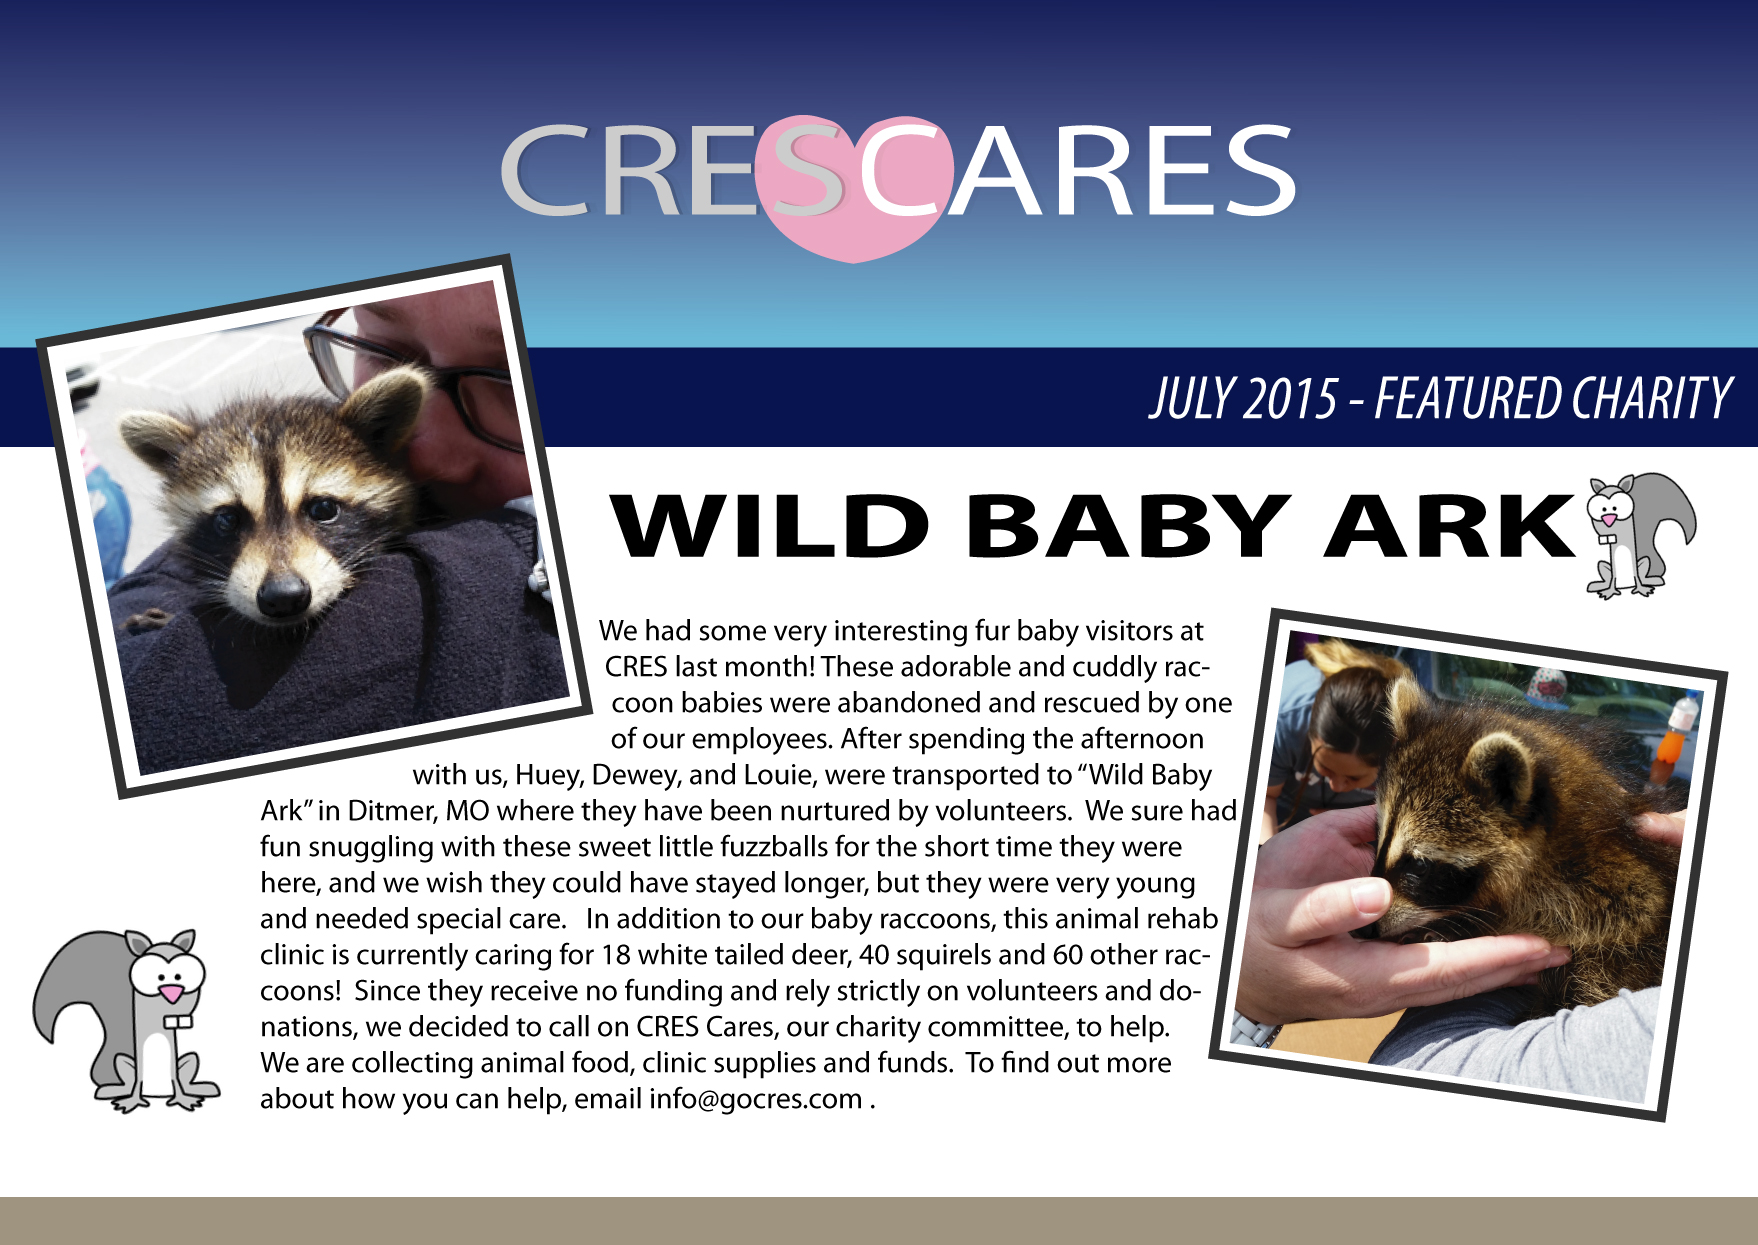 Raccoon-Promotion-Featured-Charity-July-2015